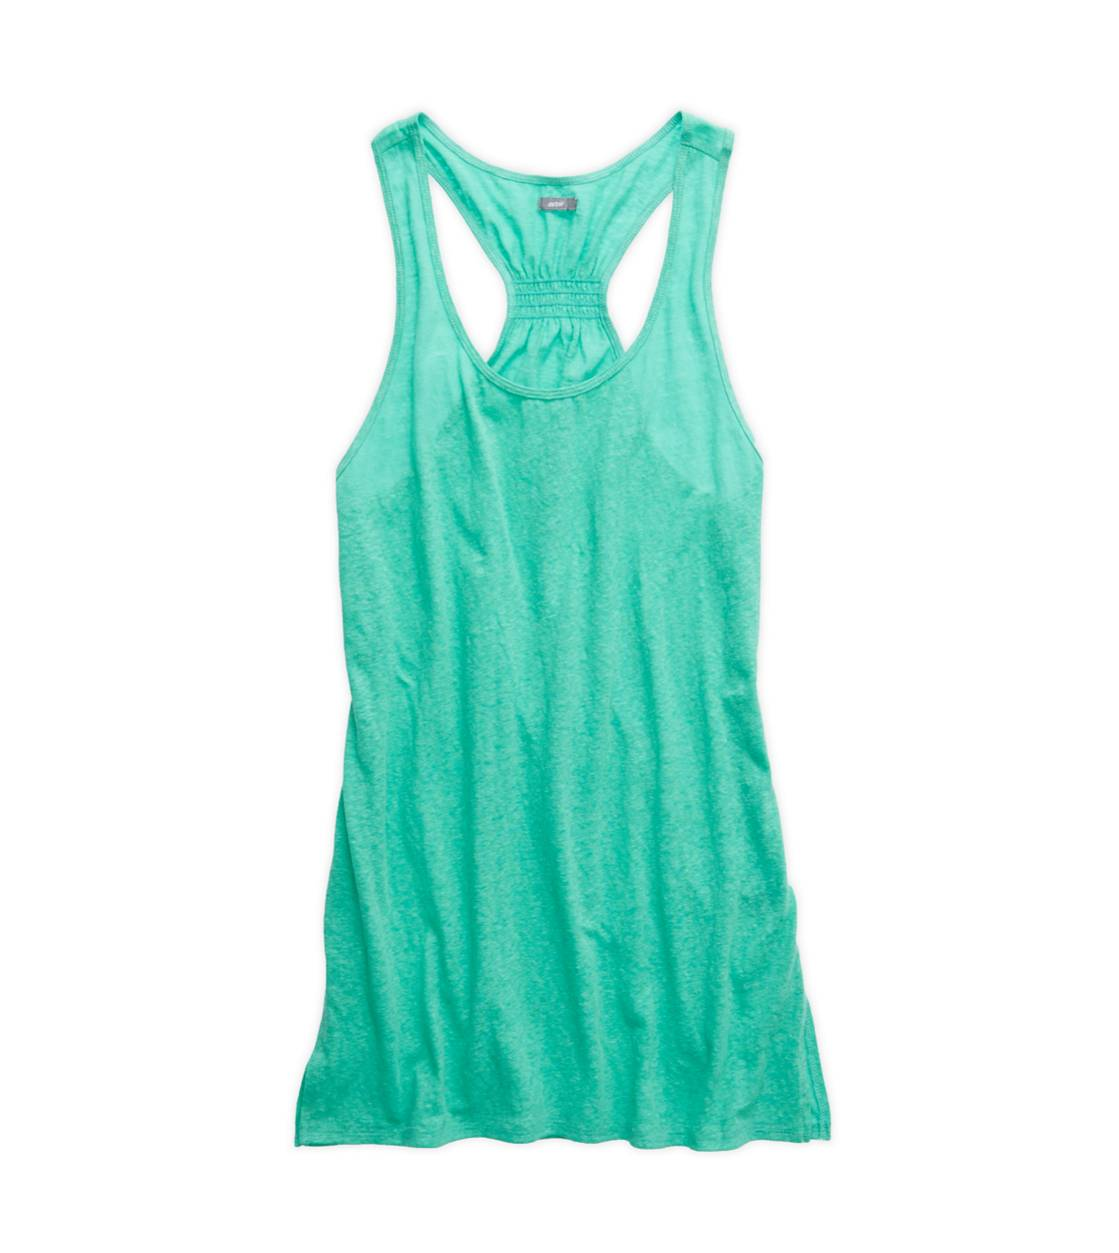 Mint Leaf Aerie Racerback Tank Dress